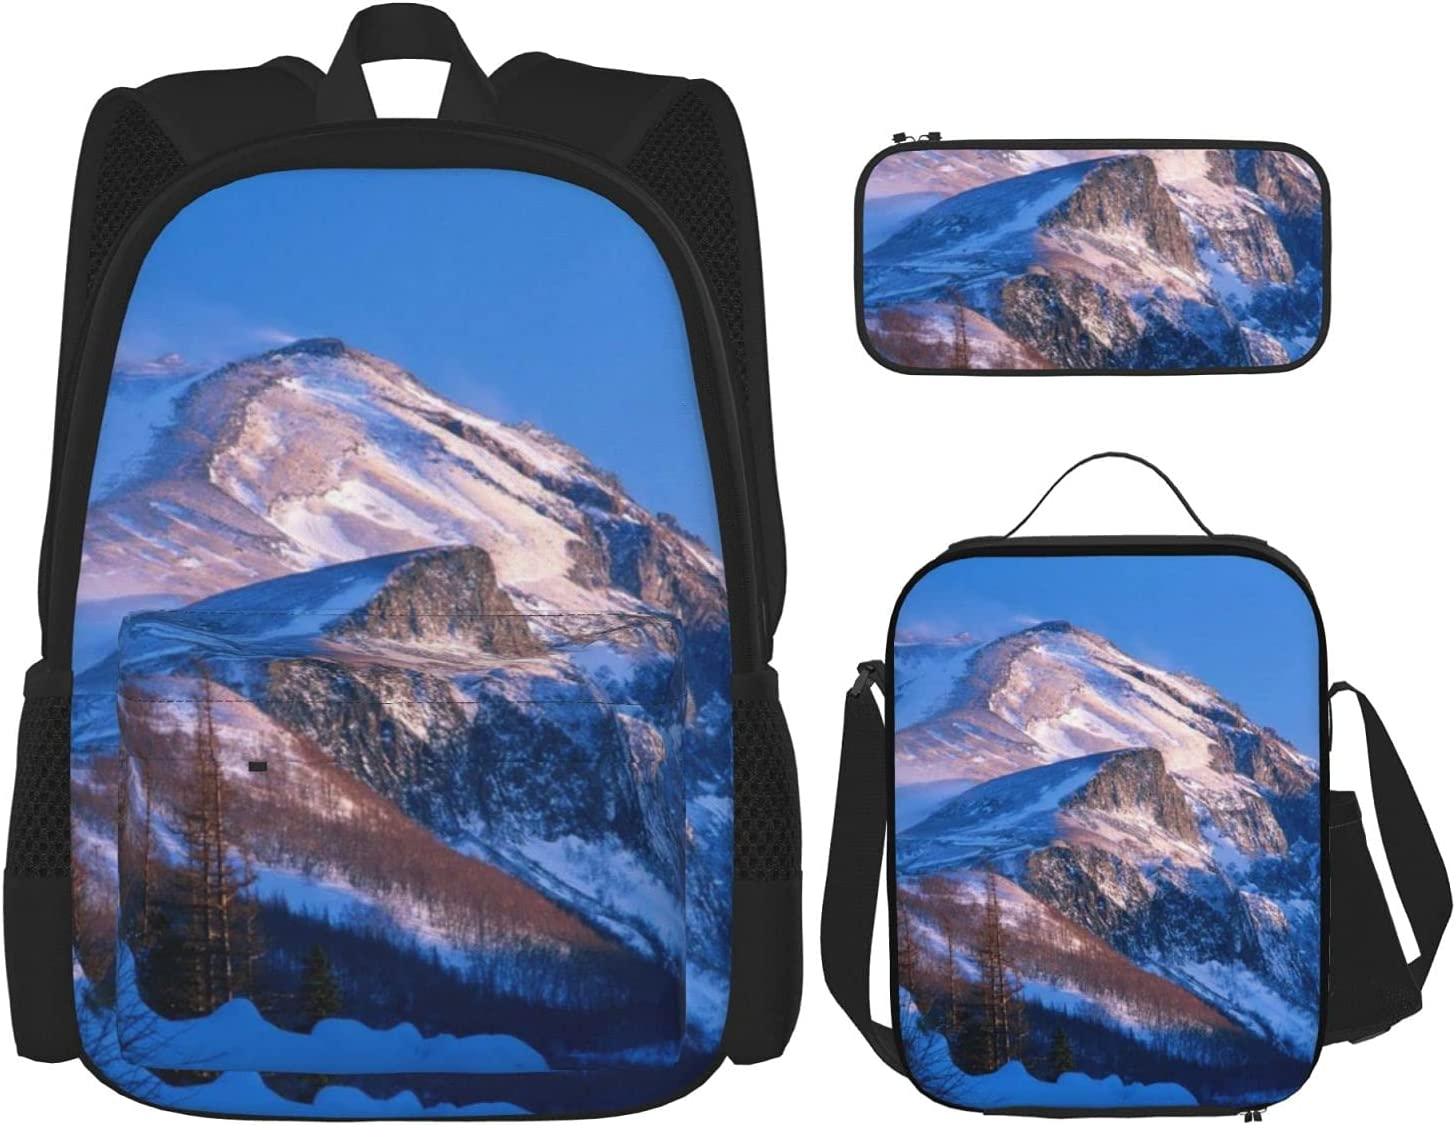 Snow Mountain Early In The Backpack Seattle Mall Student School Teen Max 59% OFF Morning